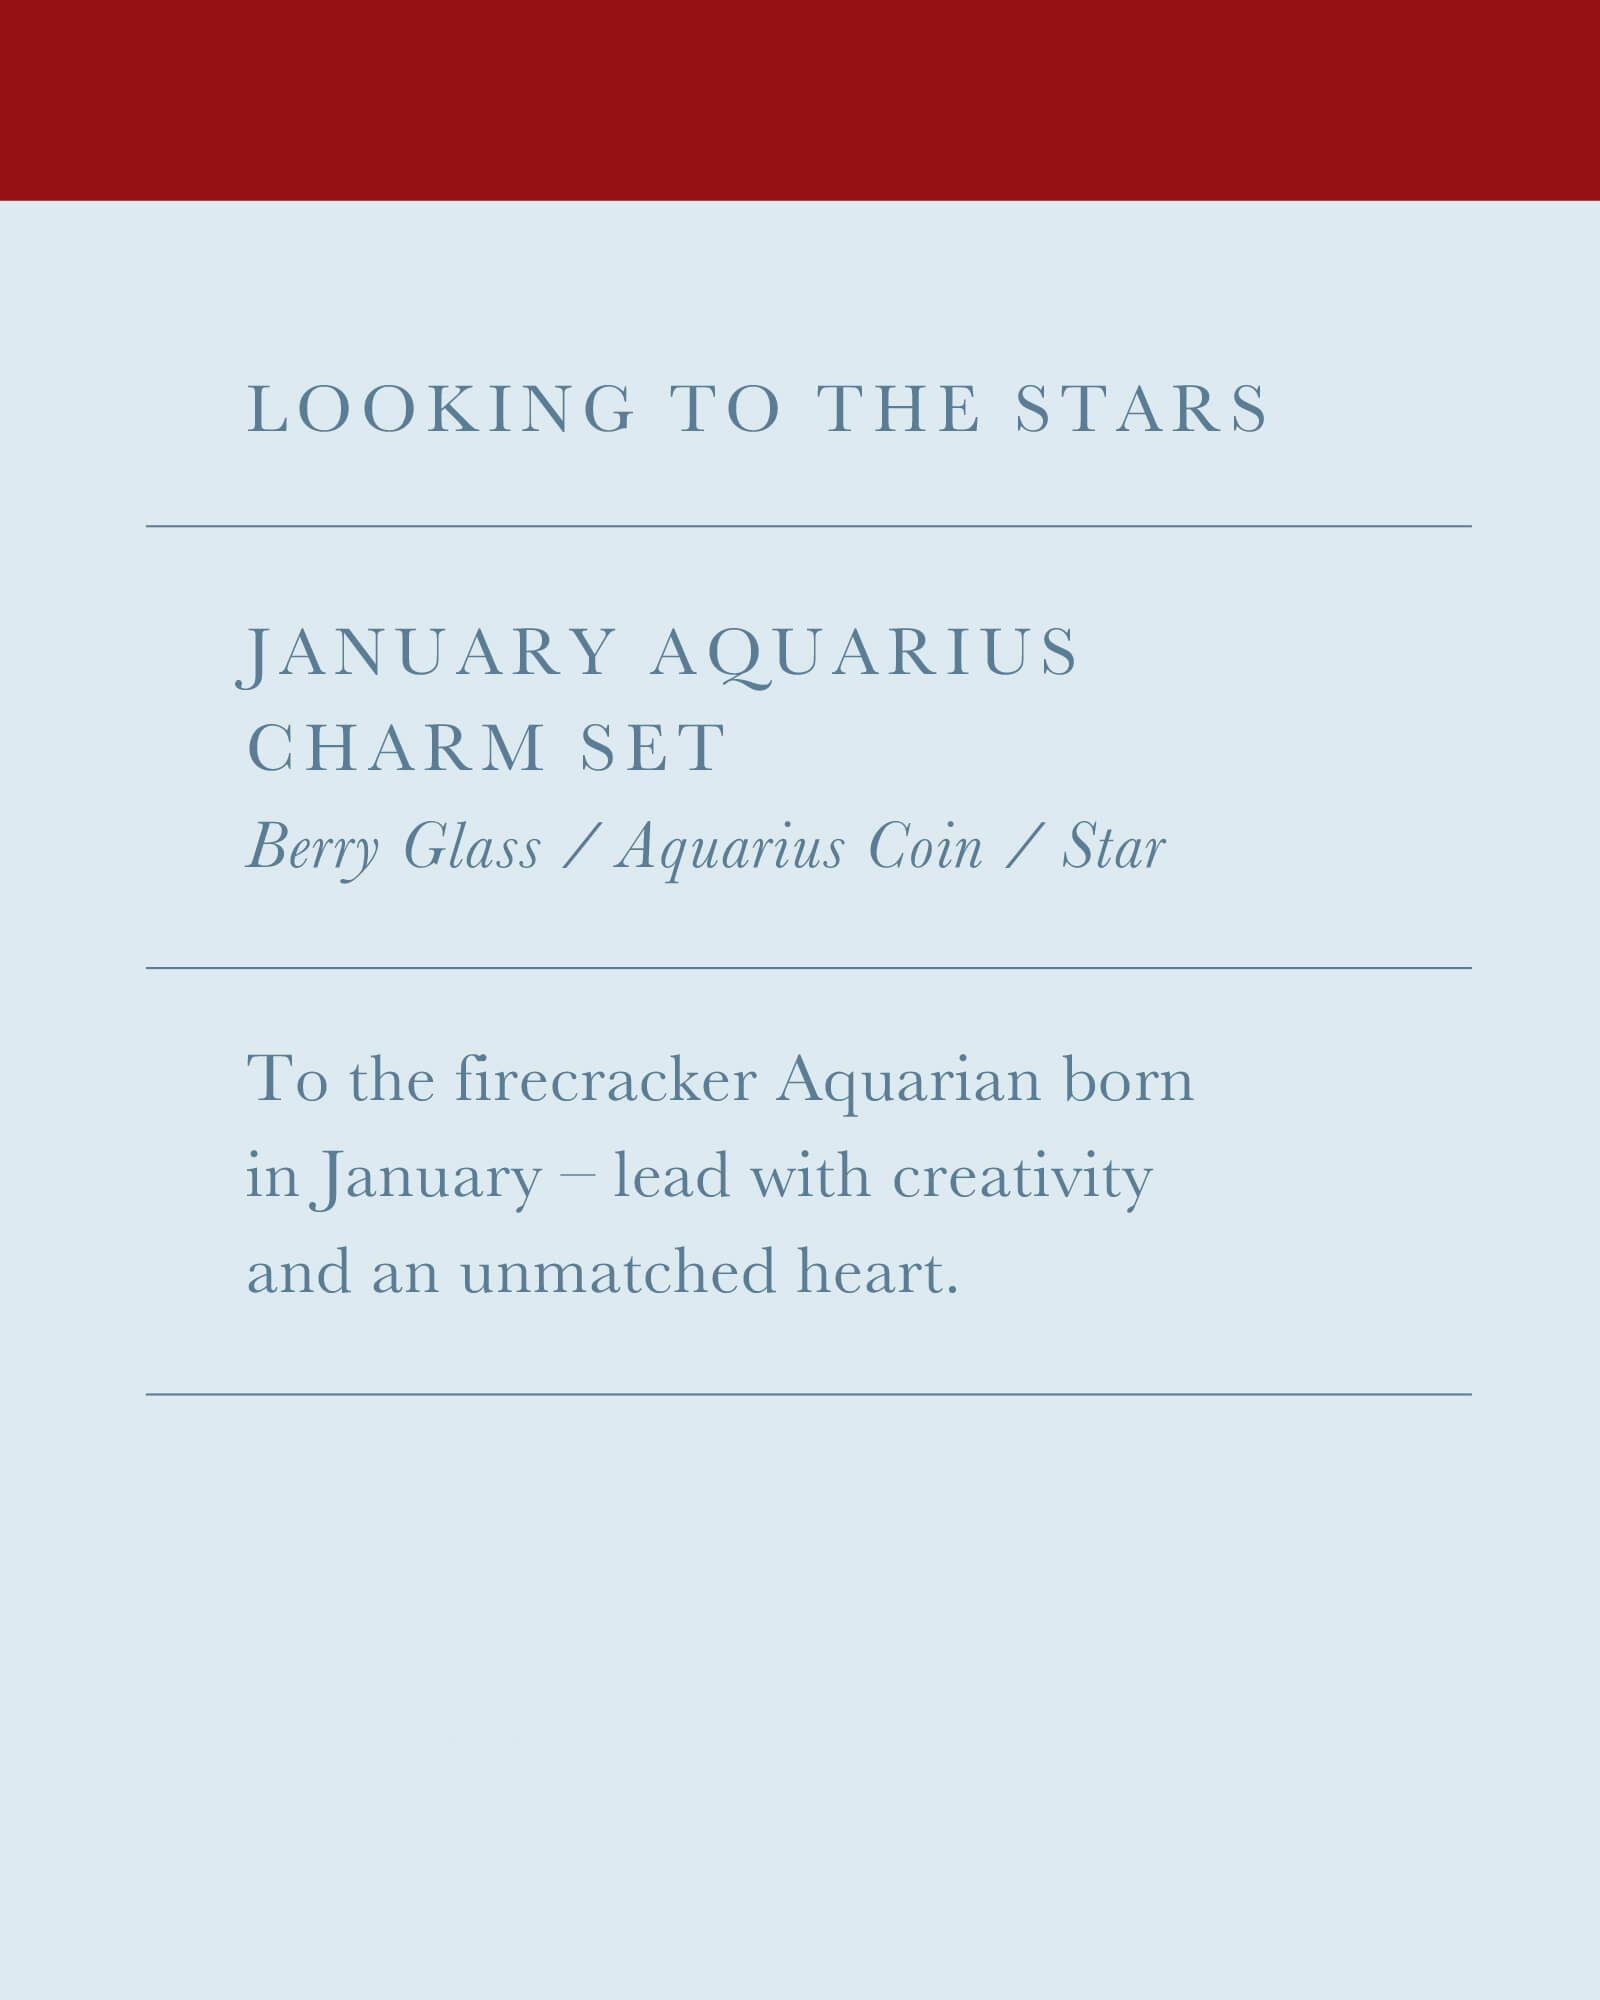 January Aquarius Charm Necklace Set in Gold